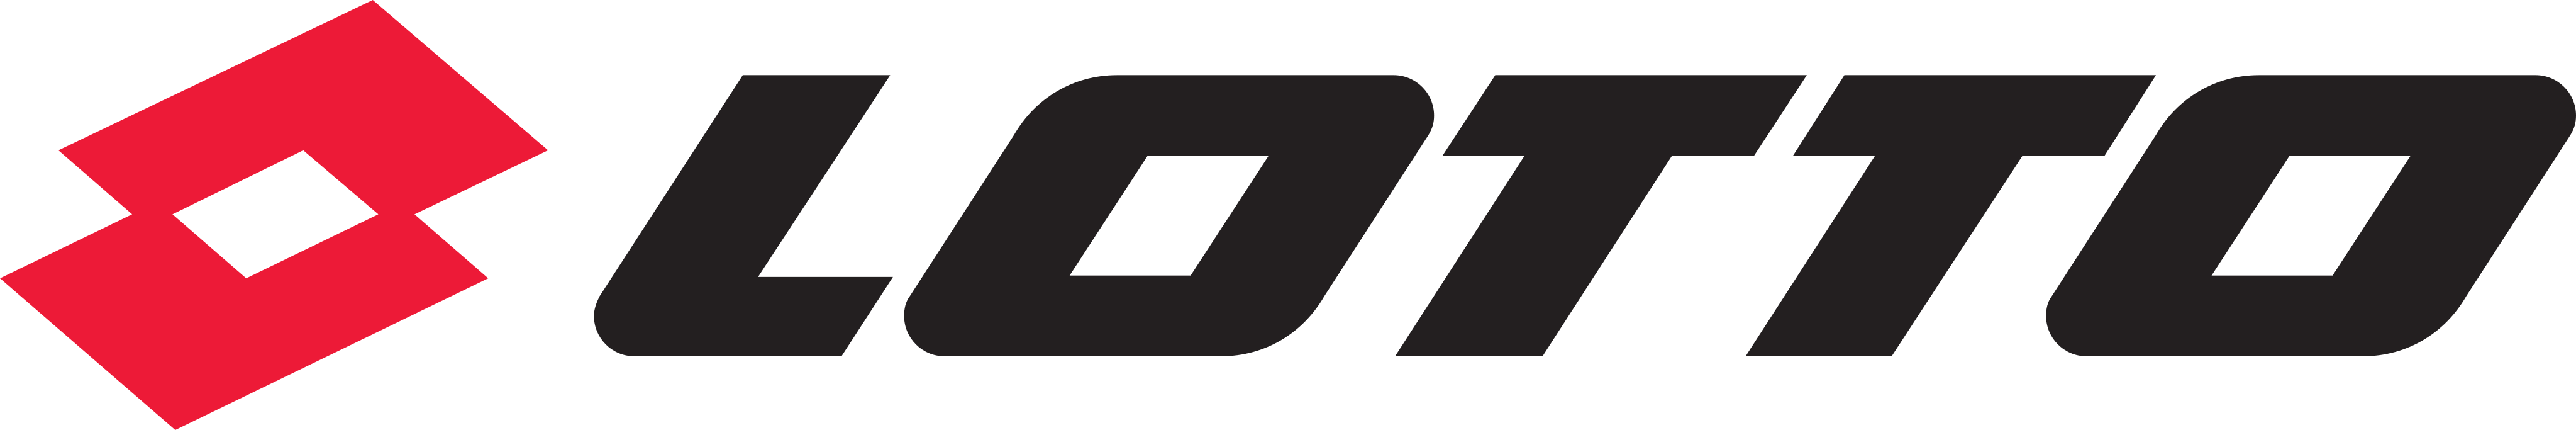 Lotto Logo.